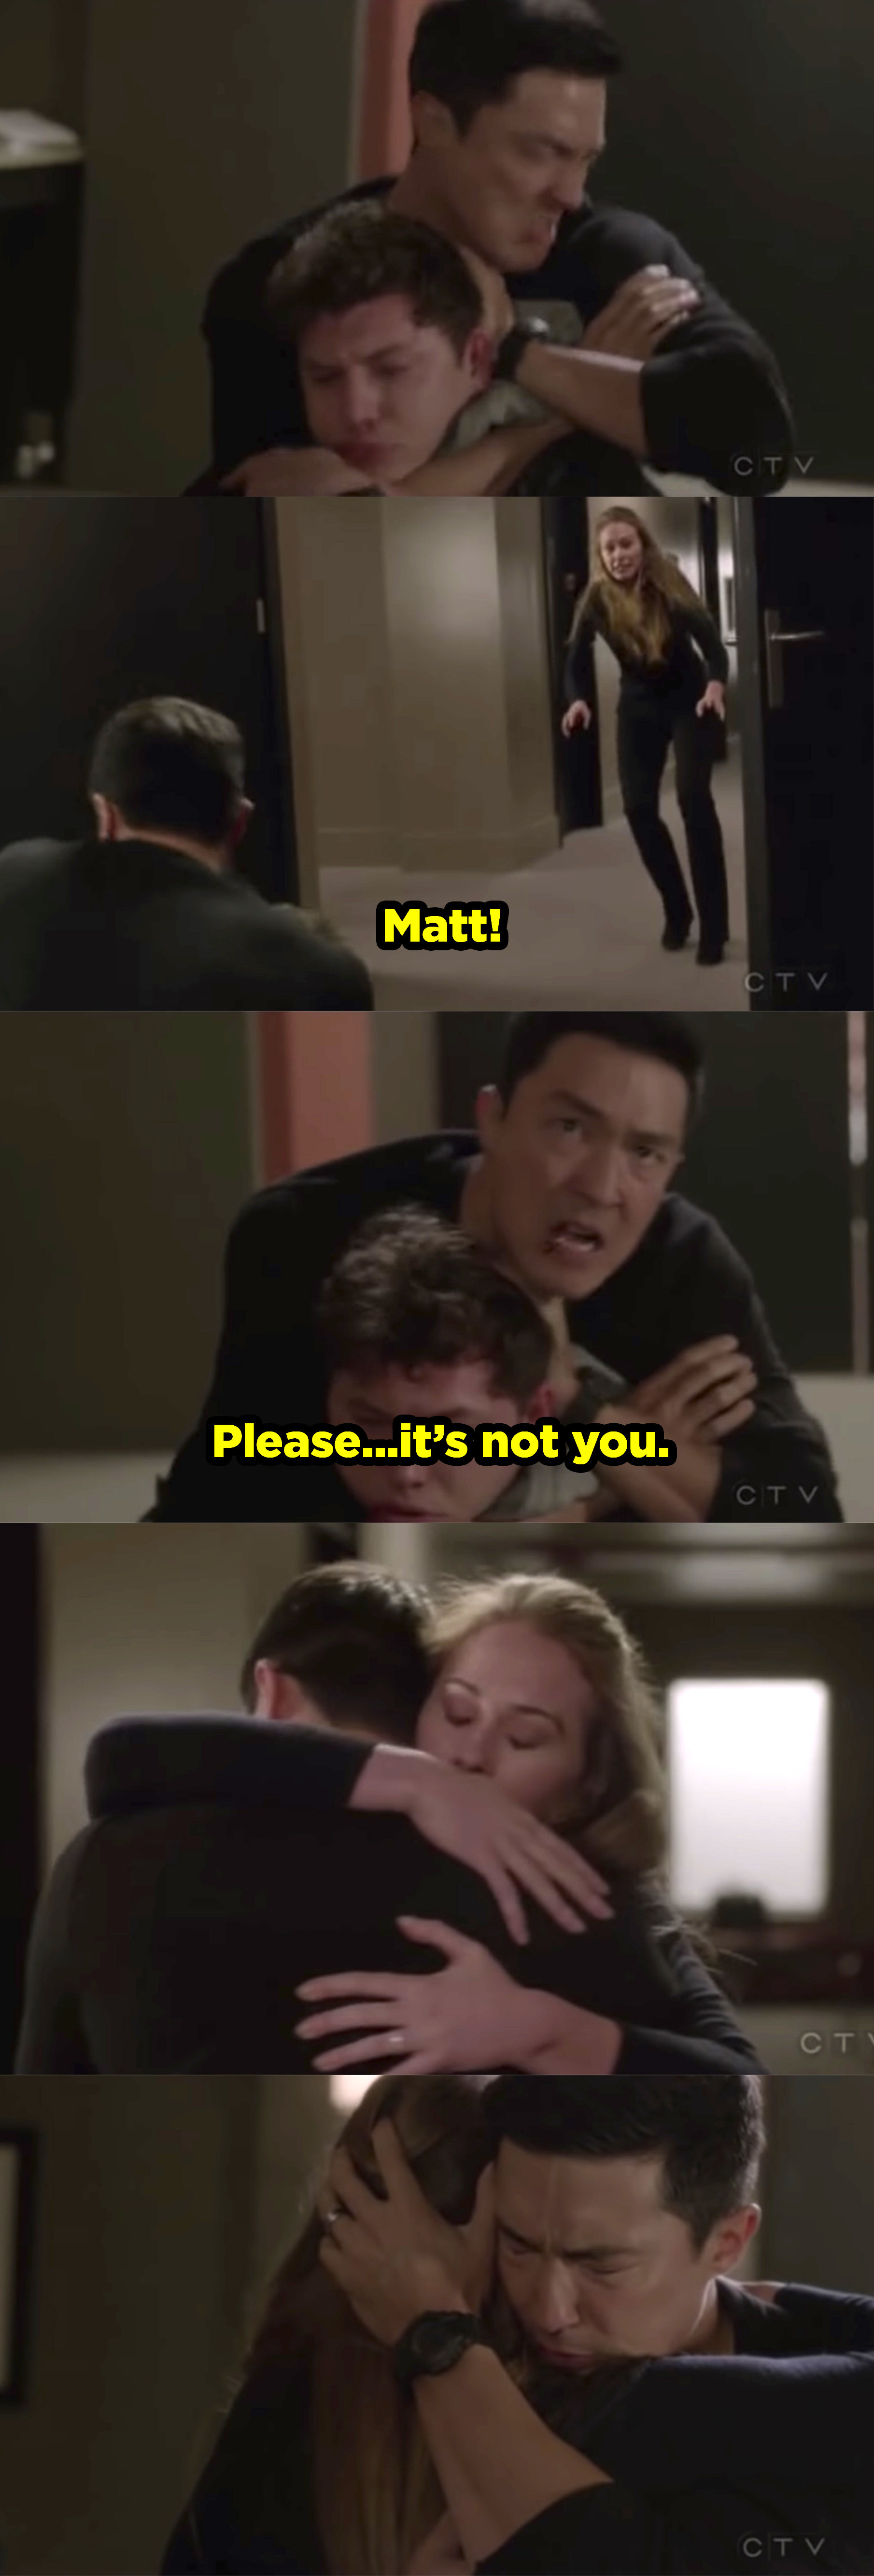 Matt nearly strangling the kidnapper but Kristy running in and yelling at him to stop. He stops and they embrace.